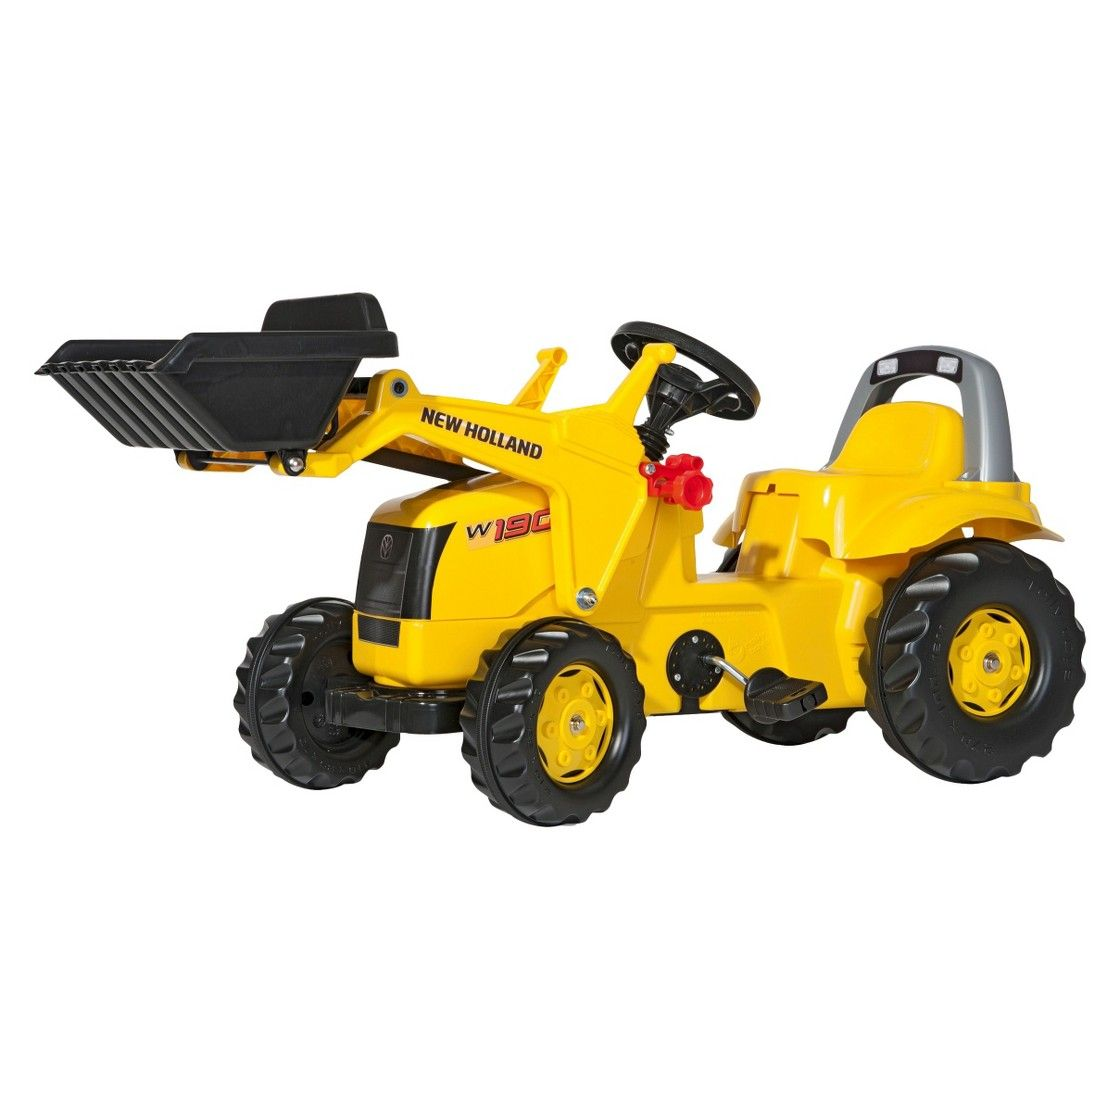 kettler new holland kid tractor w front loader ride on toy